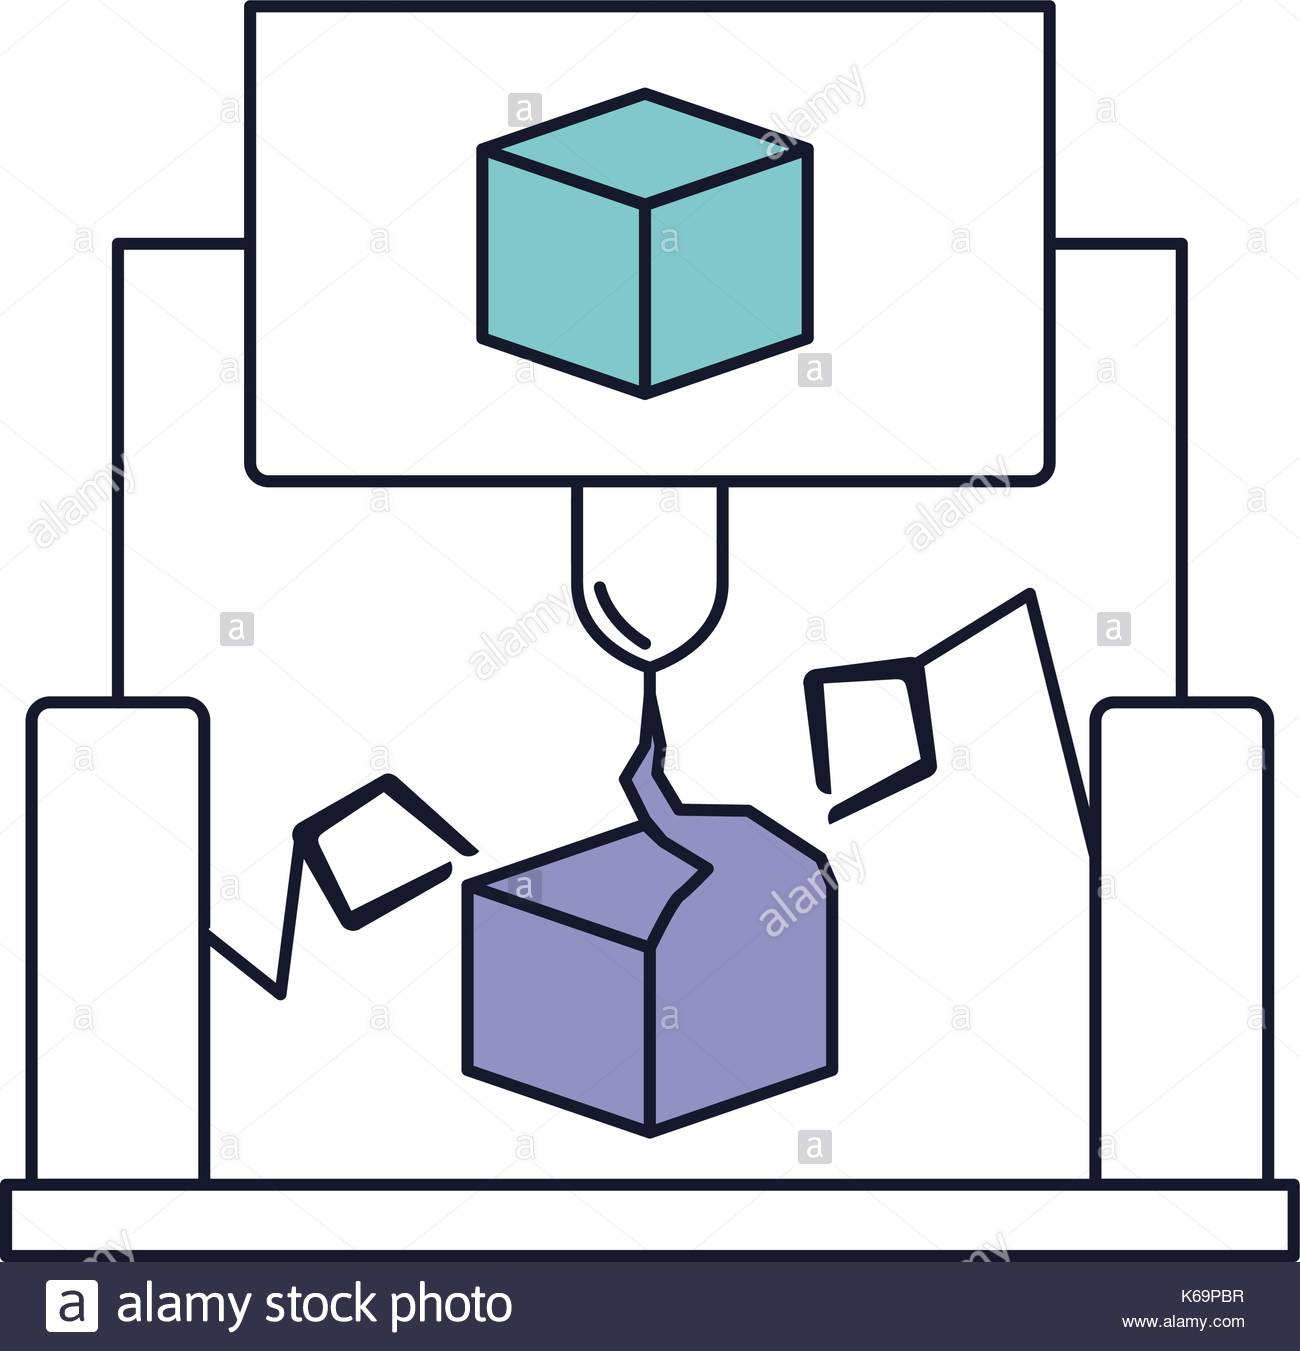 1300x1351 Cube Design With Robotic Hands In Color Section Silhouette Stock